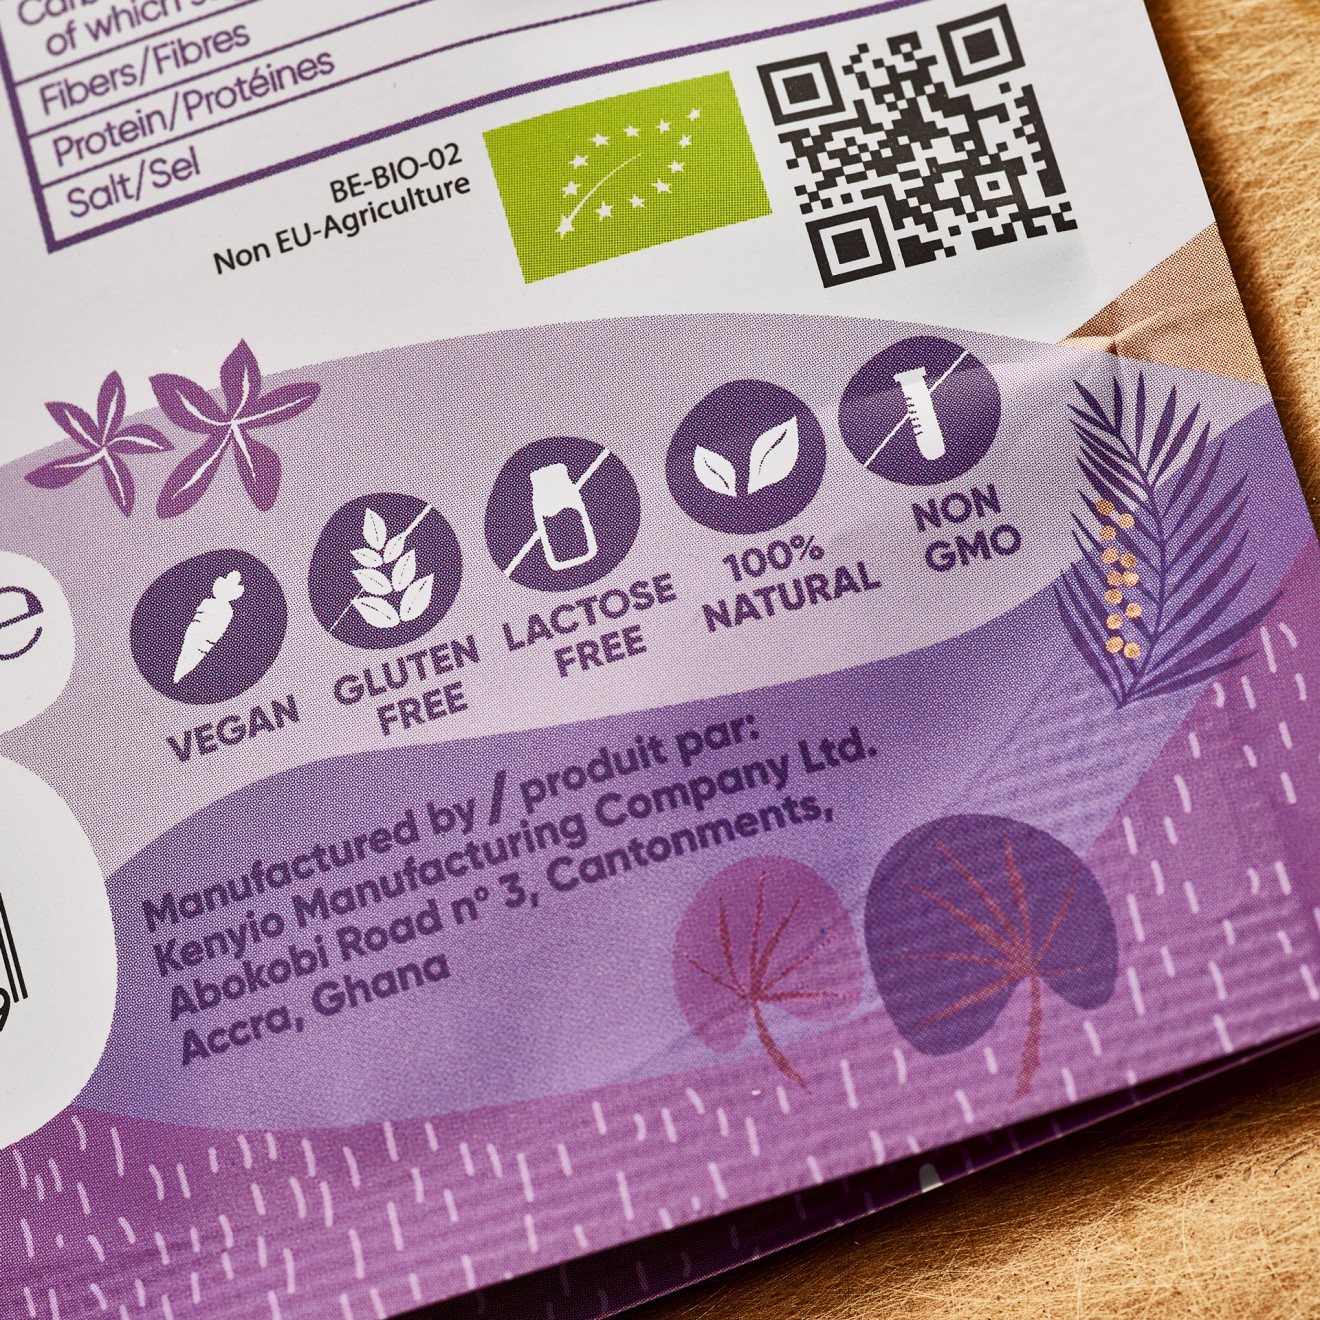 Quatre Mains package design - superfood, quatre mains, packaging